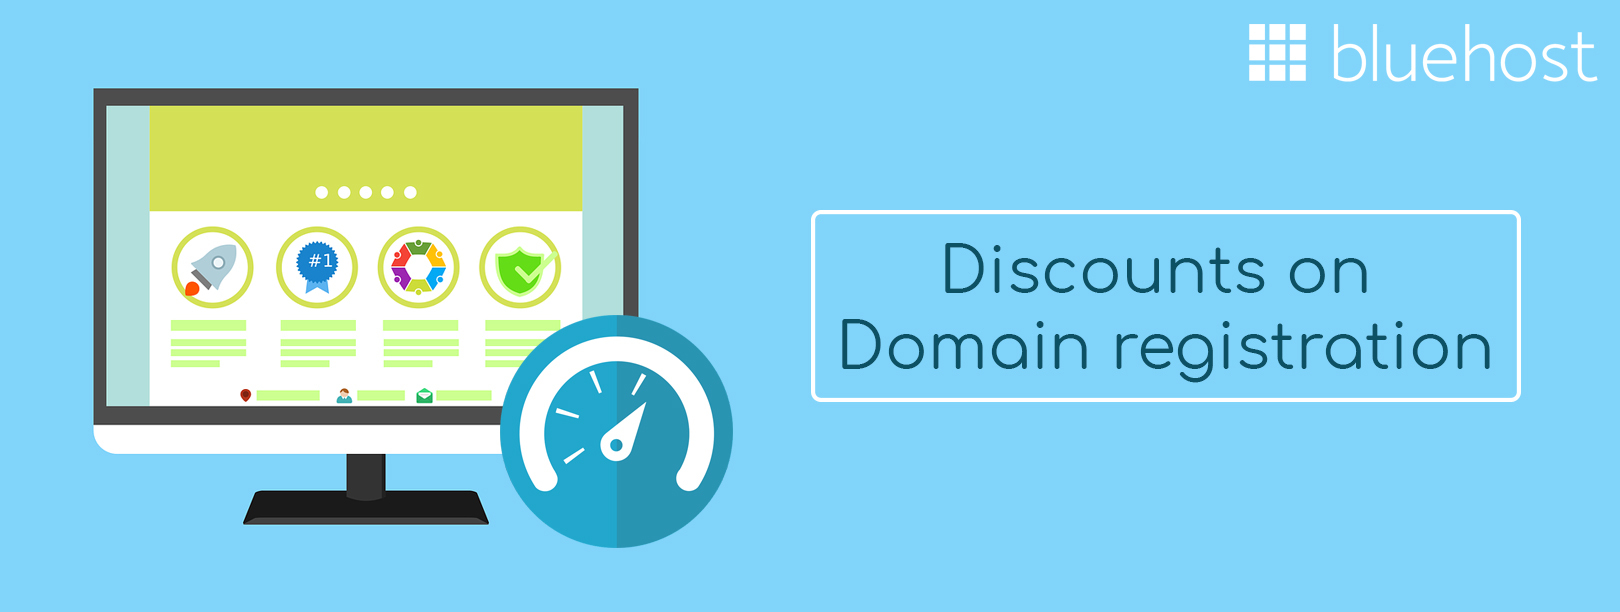 Bluehost Get your own domain at Rs 599